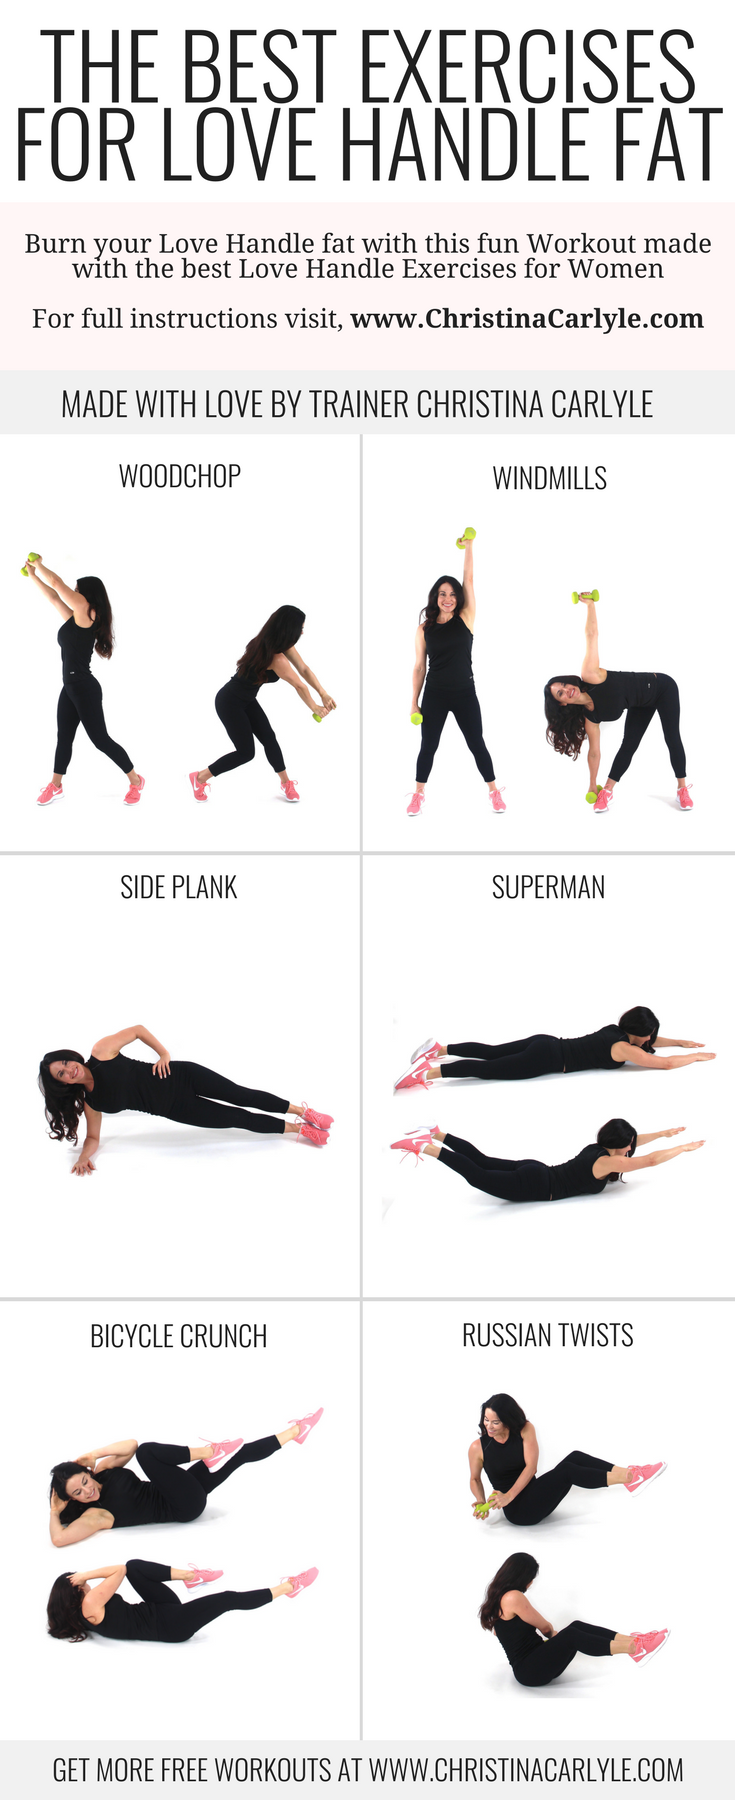 How To Work Out Your Love Handles At Home